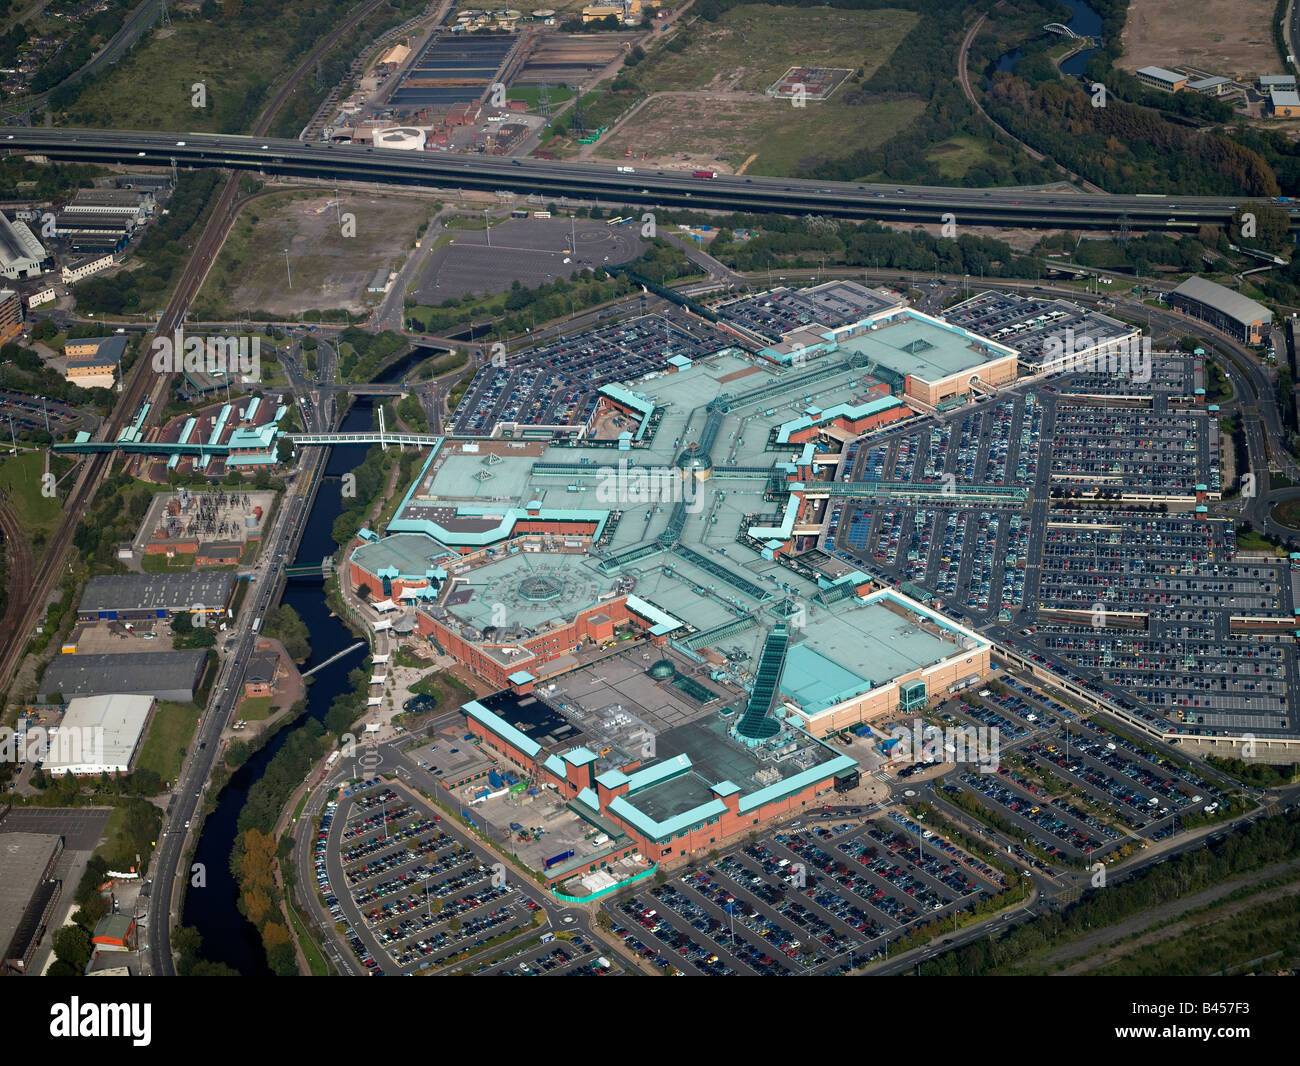 Meadowhall Shopping Centre, Sheffield, Northern England - Stock Image